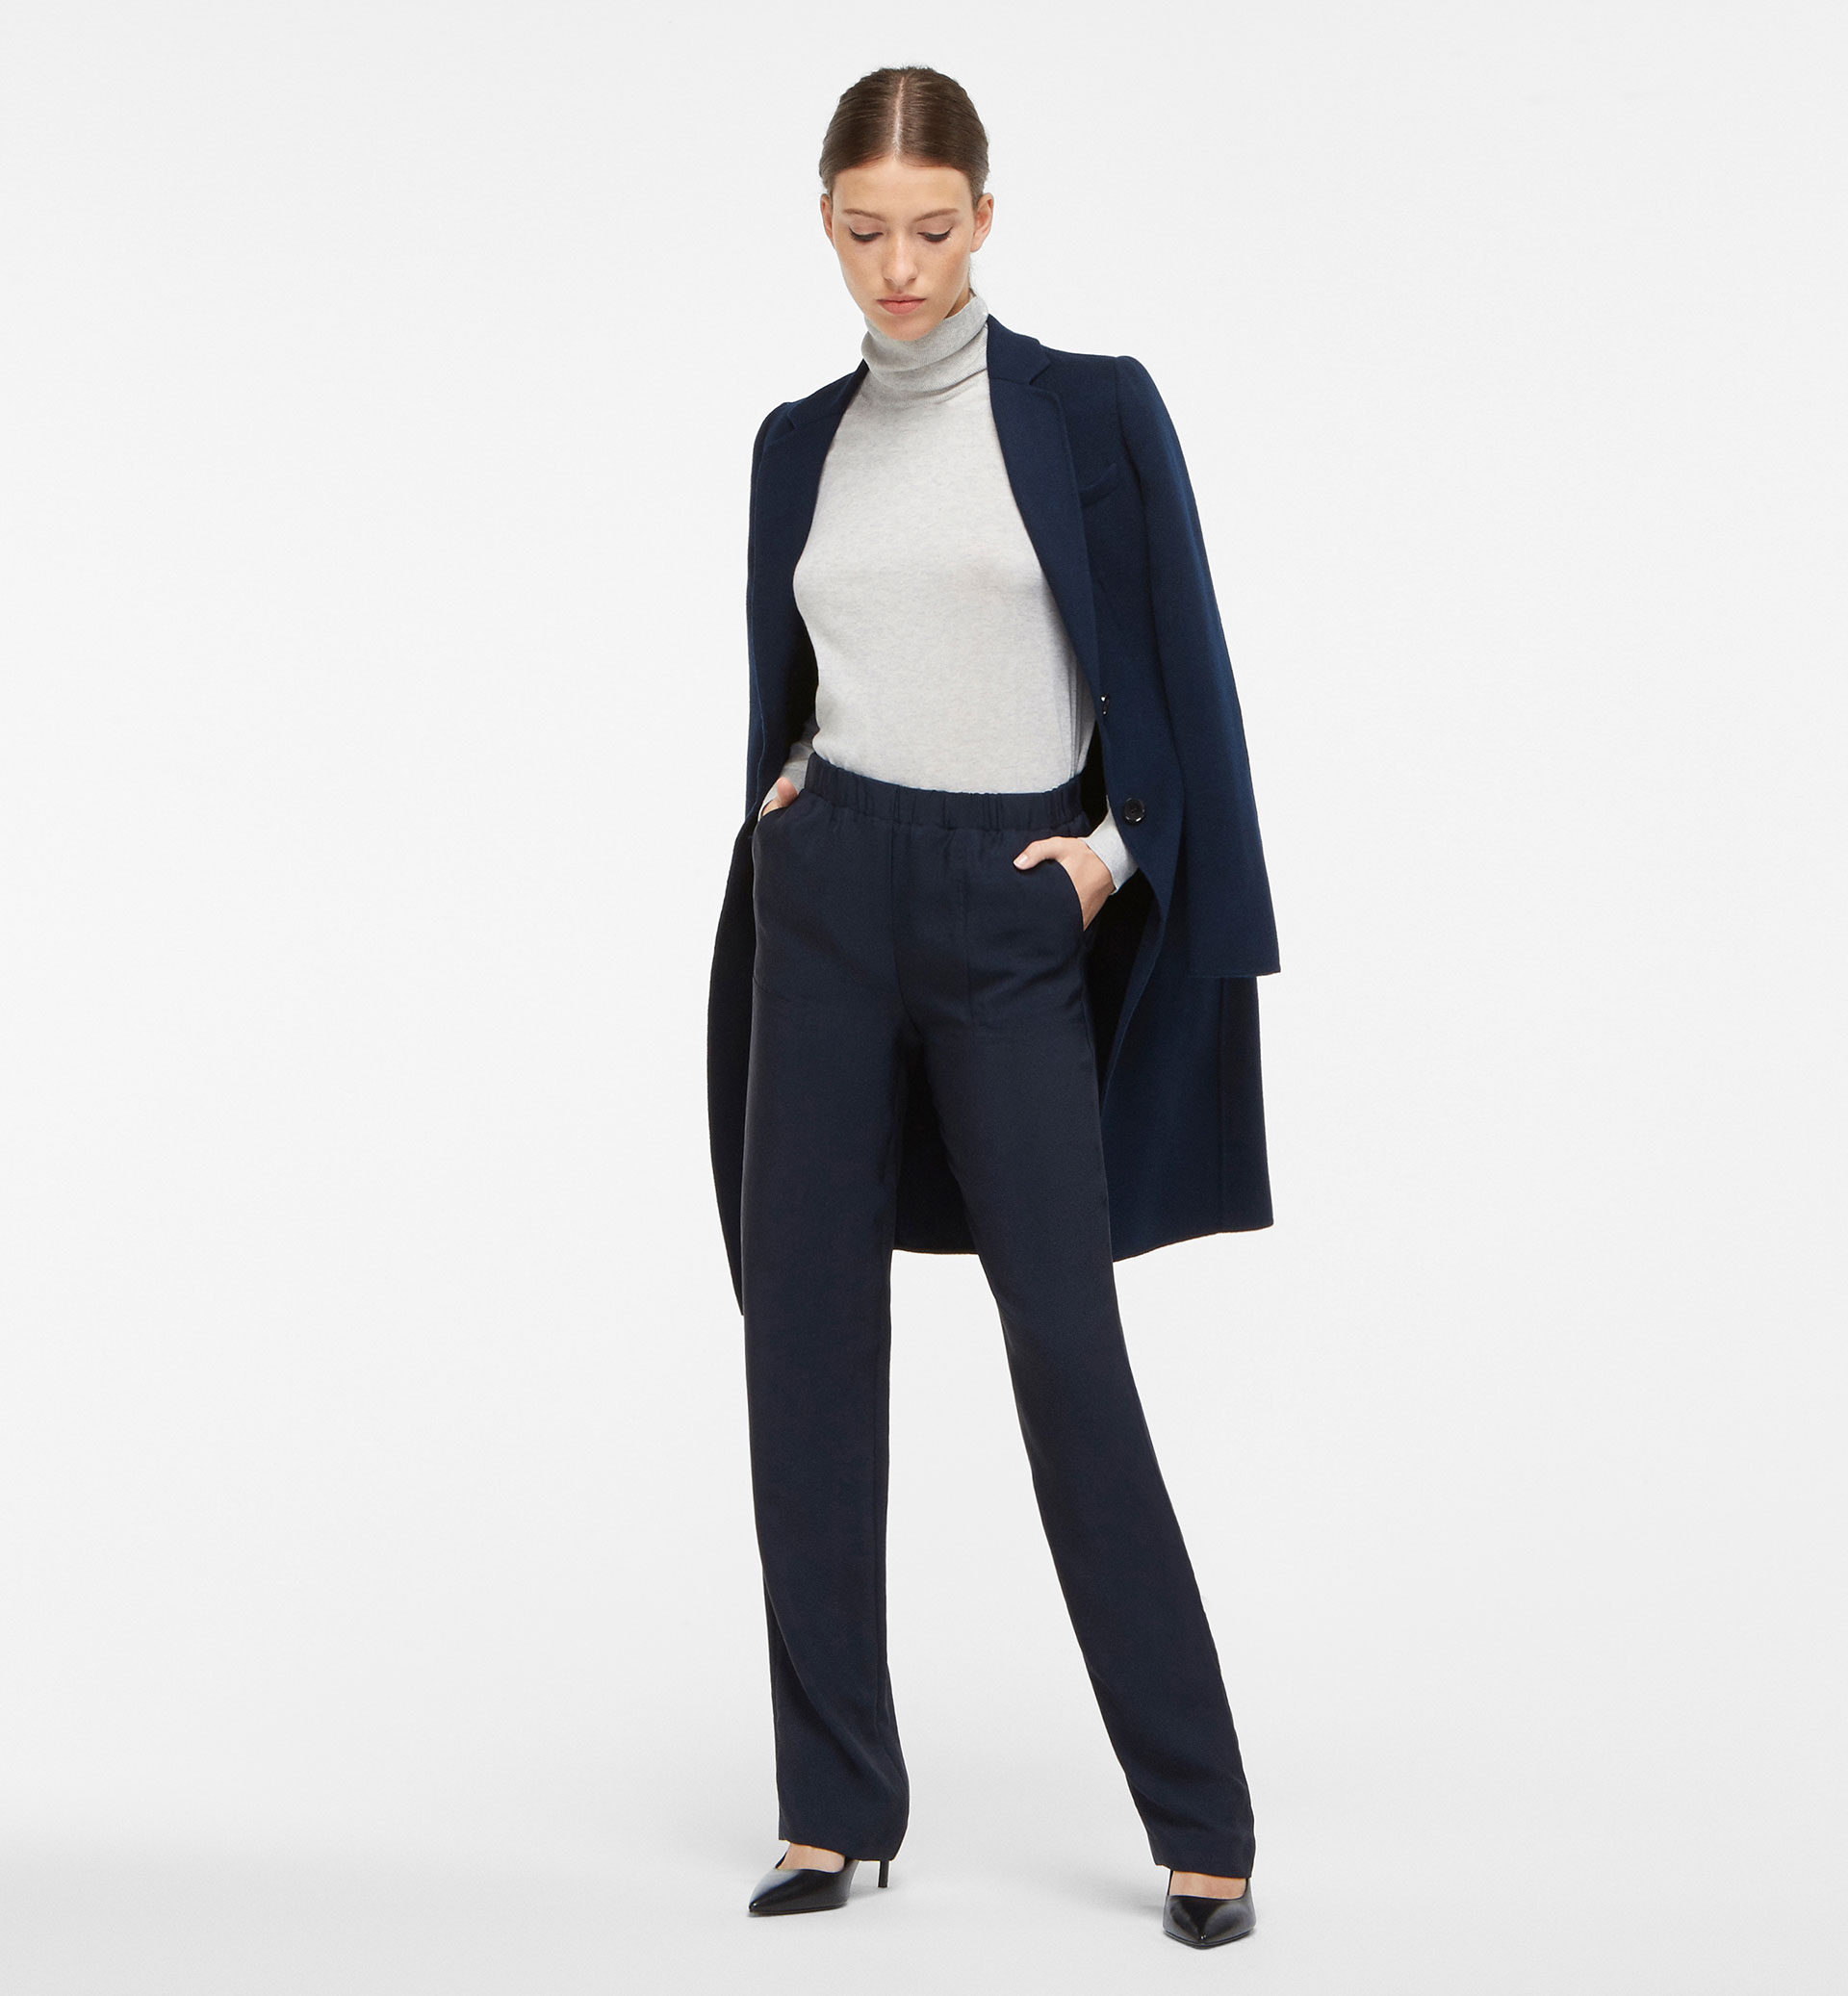 NAVY FLOWING TROUSERS